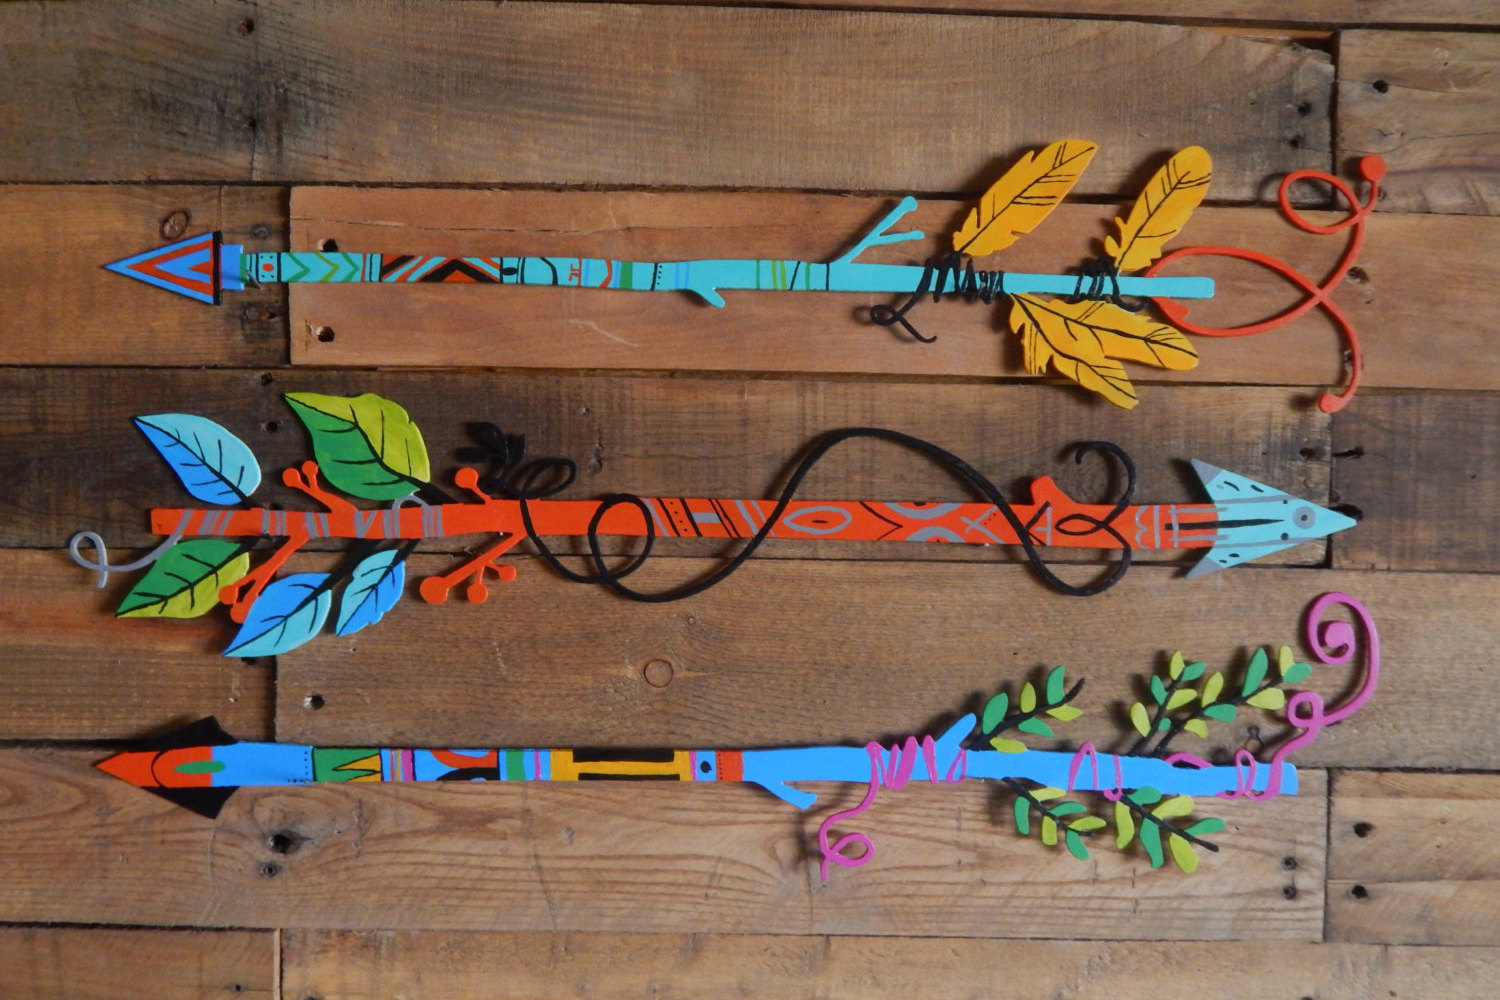 Western Metal Wall Art – Boho Decor – Hand Painted Arrows Feathers Pertaining To Most Recent Brown Metal Tribal Arrow Wall Decor (Gallery 8 of 20)